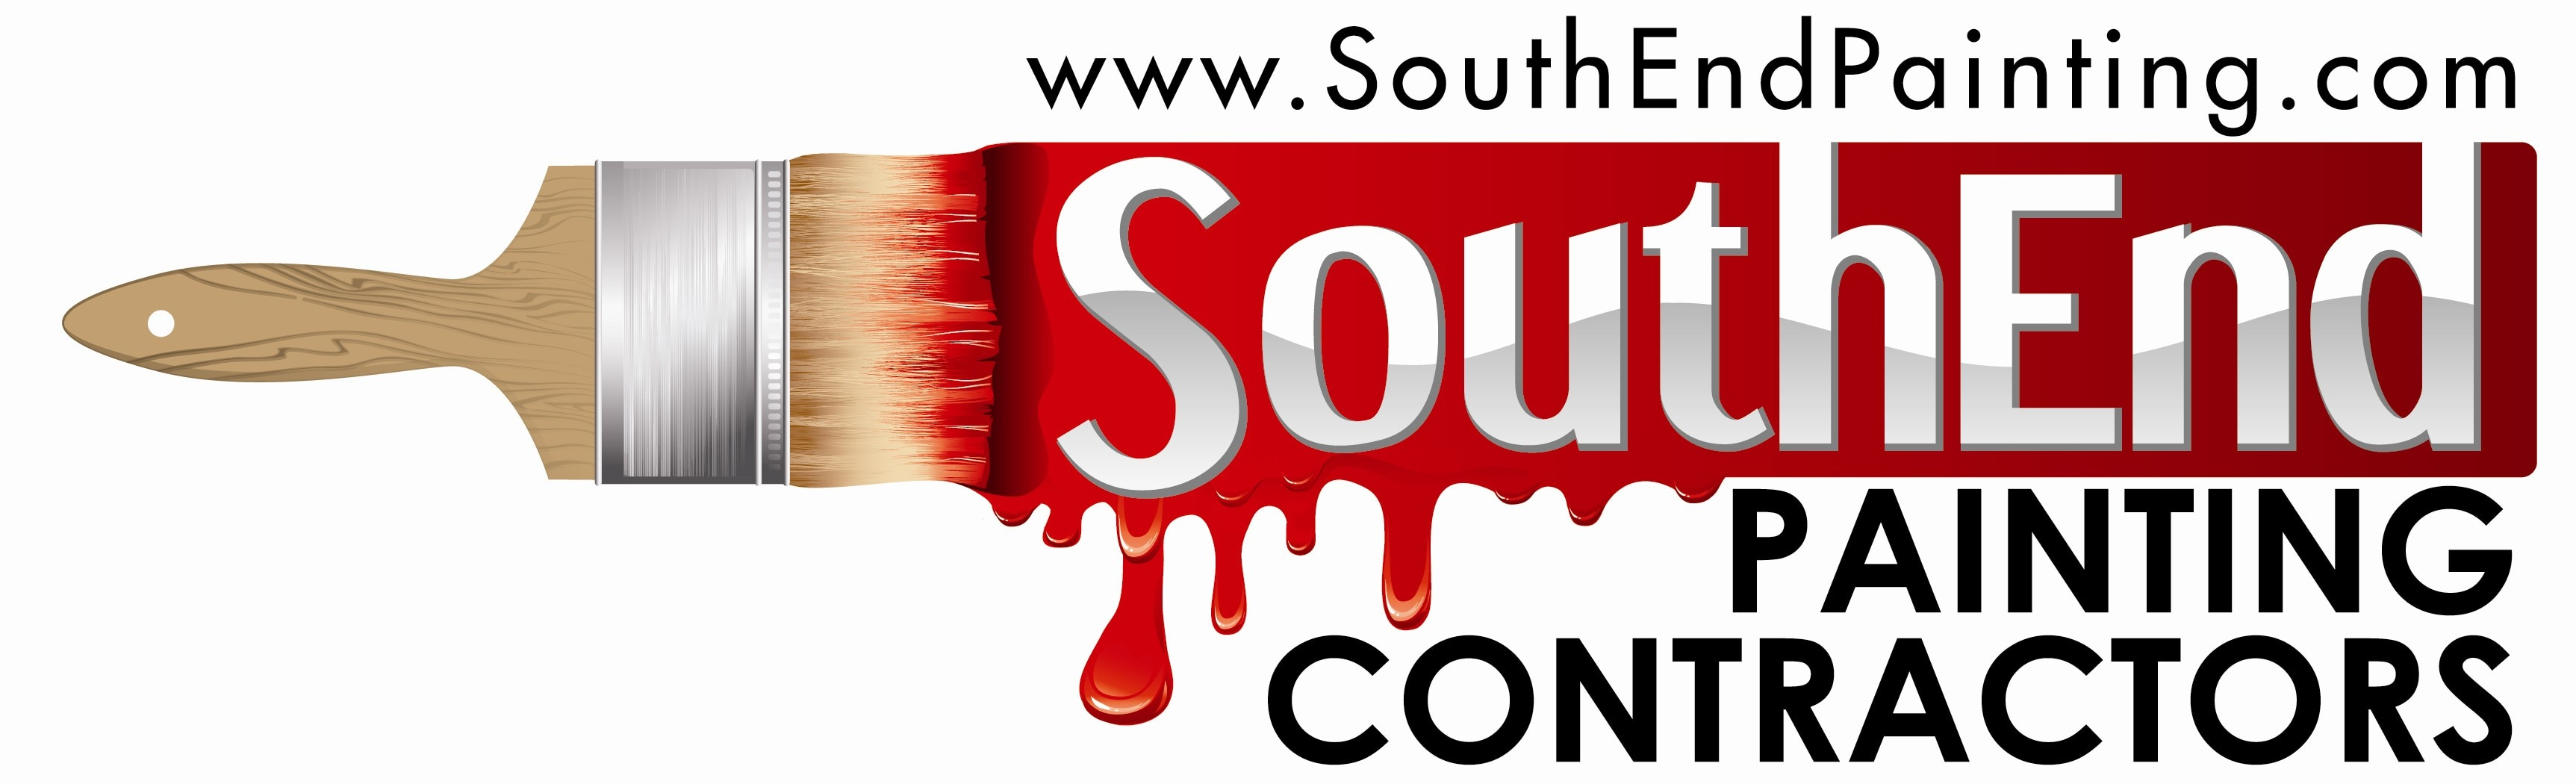 SouthEnd Painting and Roofing Contractors logo